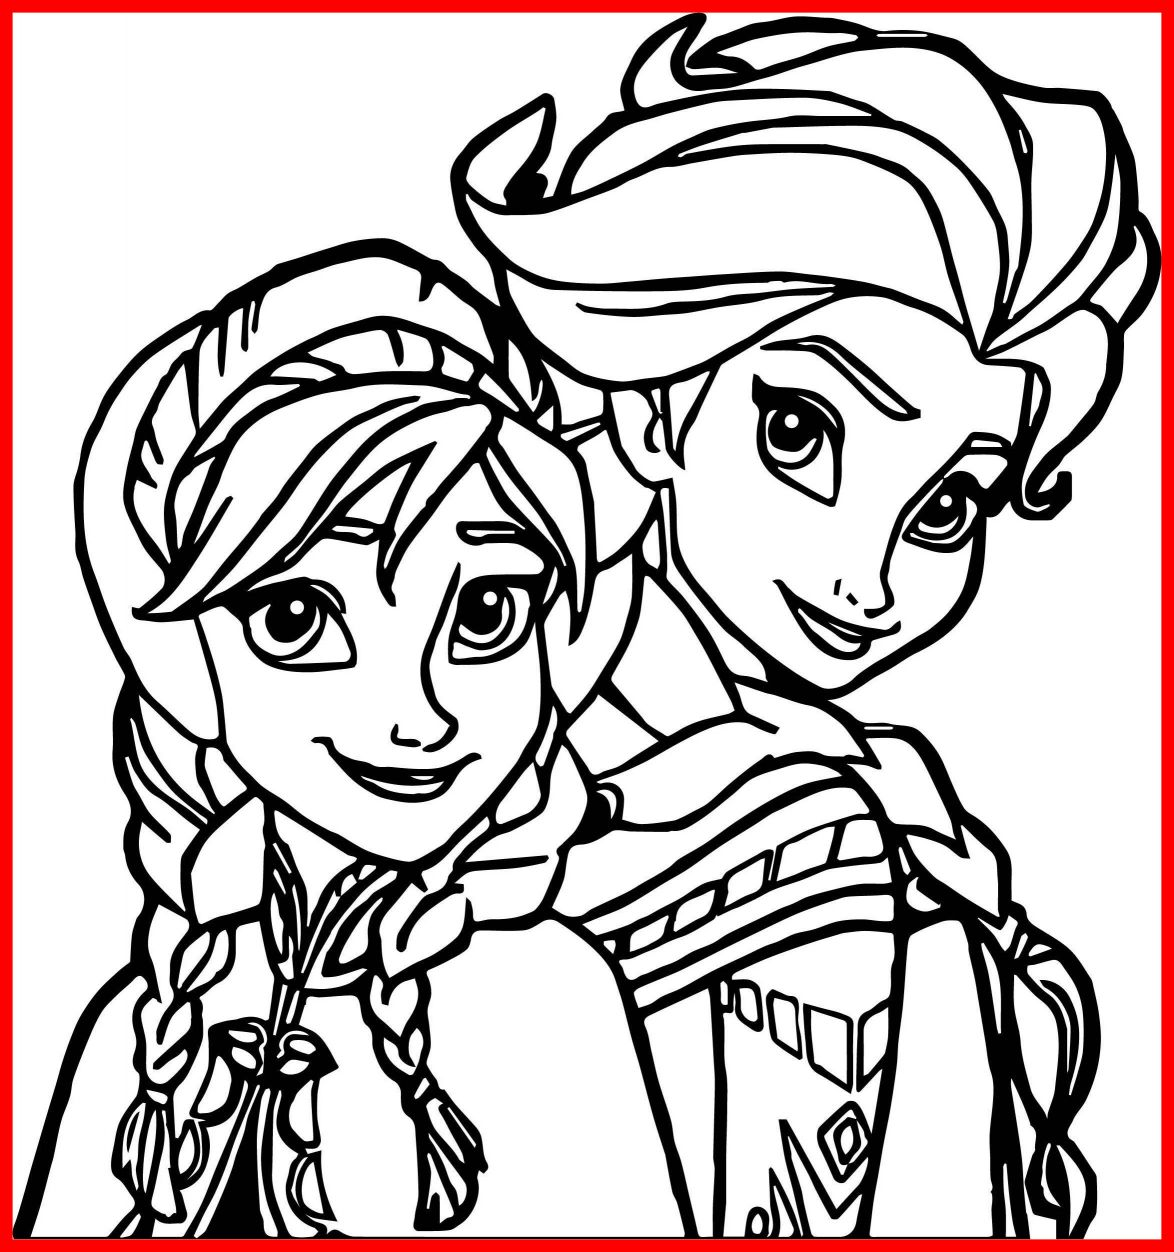 Sven Frozen Coloring Pages At Getcolorings